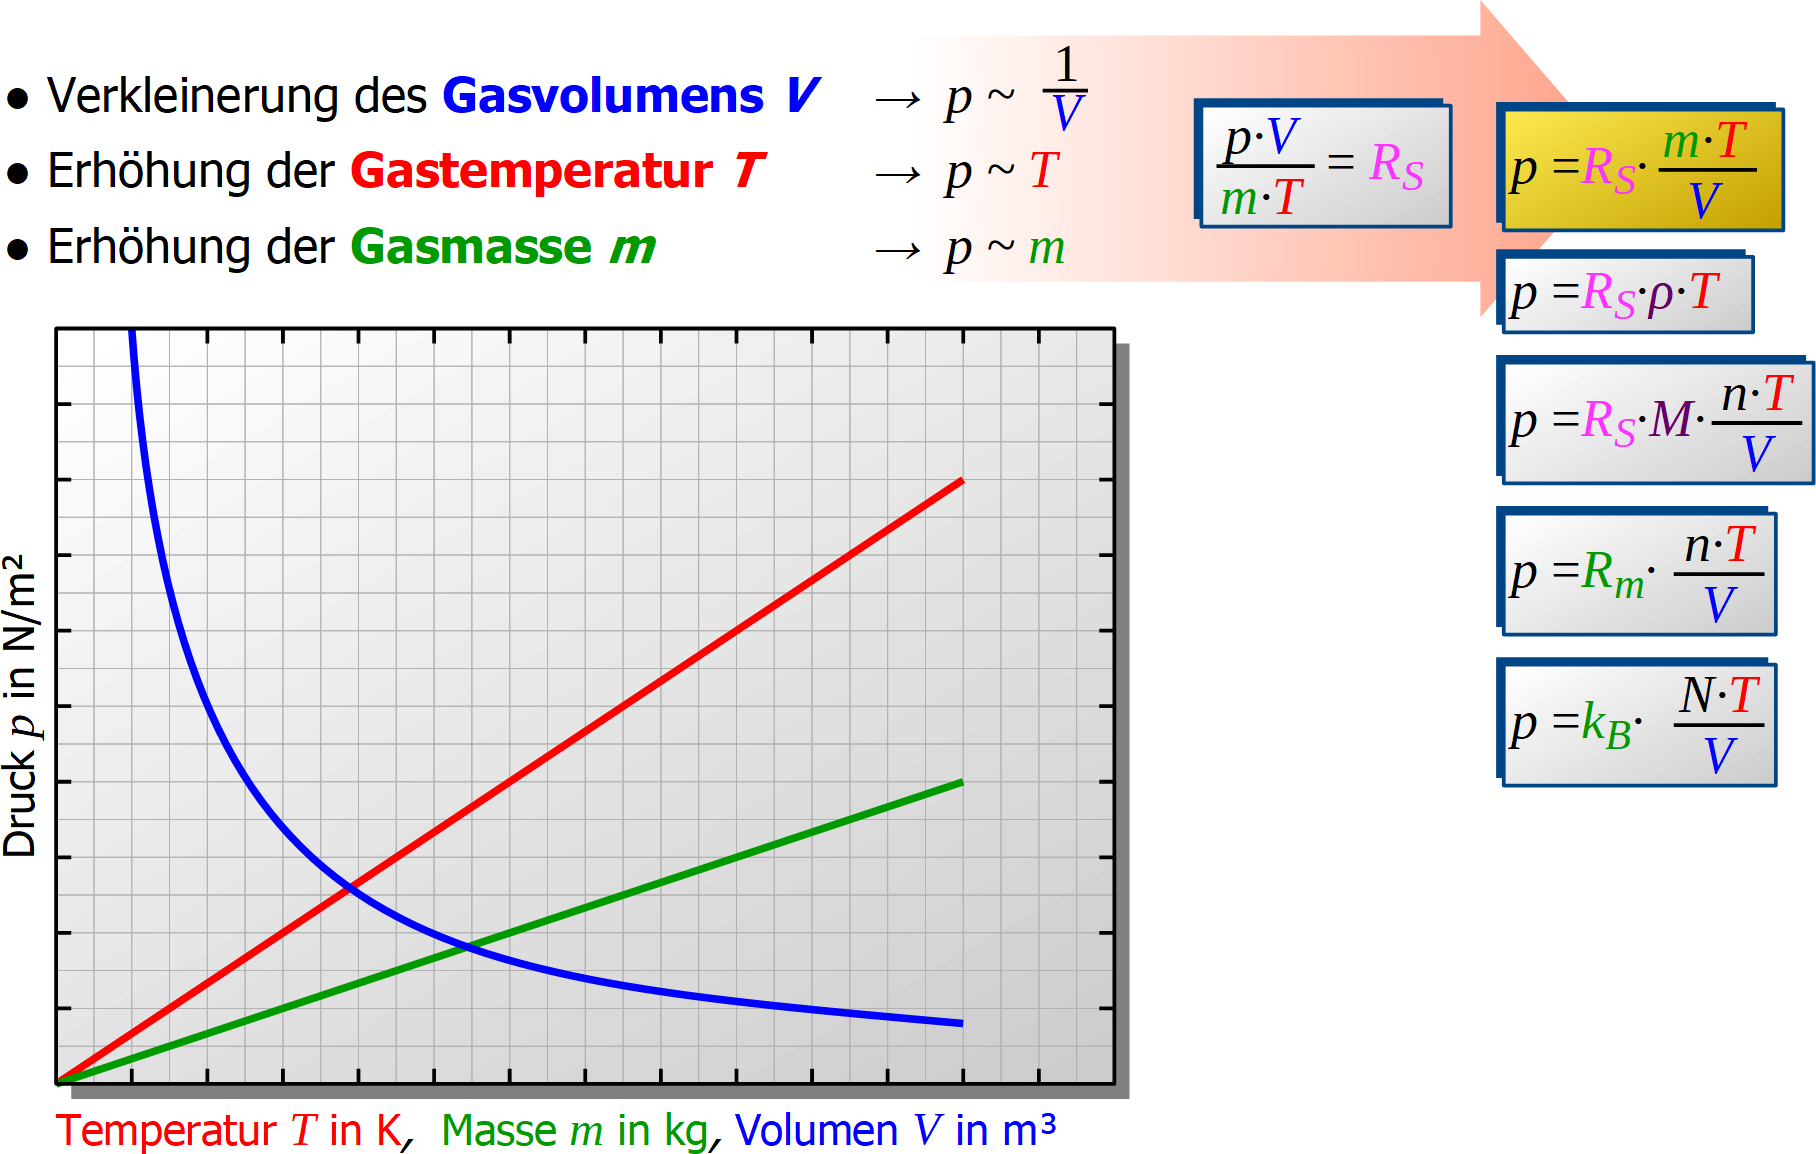 Thermische, Zzustandsgleichung, Diagramm, Gas-druck, Gas-masse, Gas-volumen, Gas-temperatur